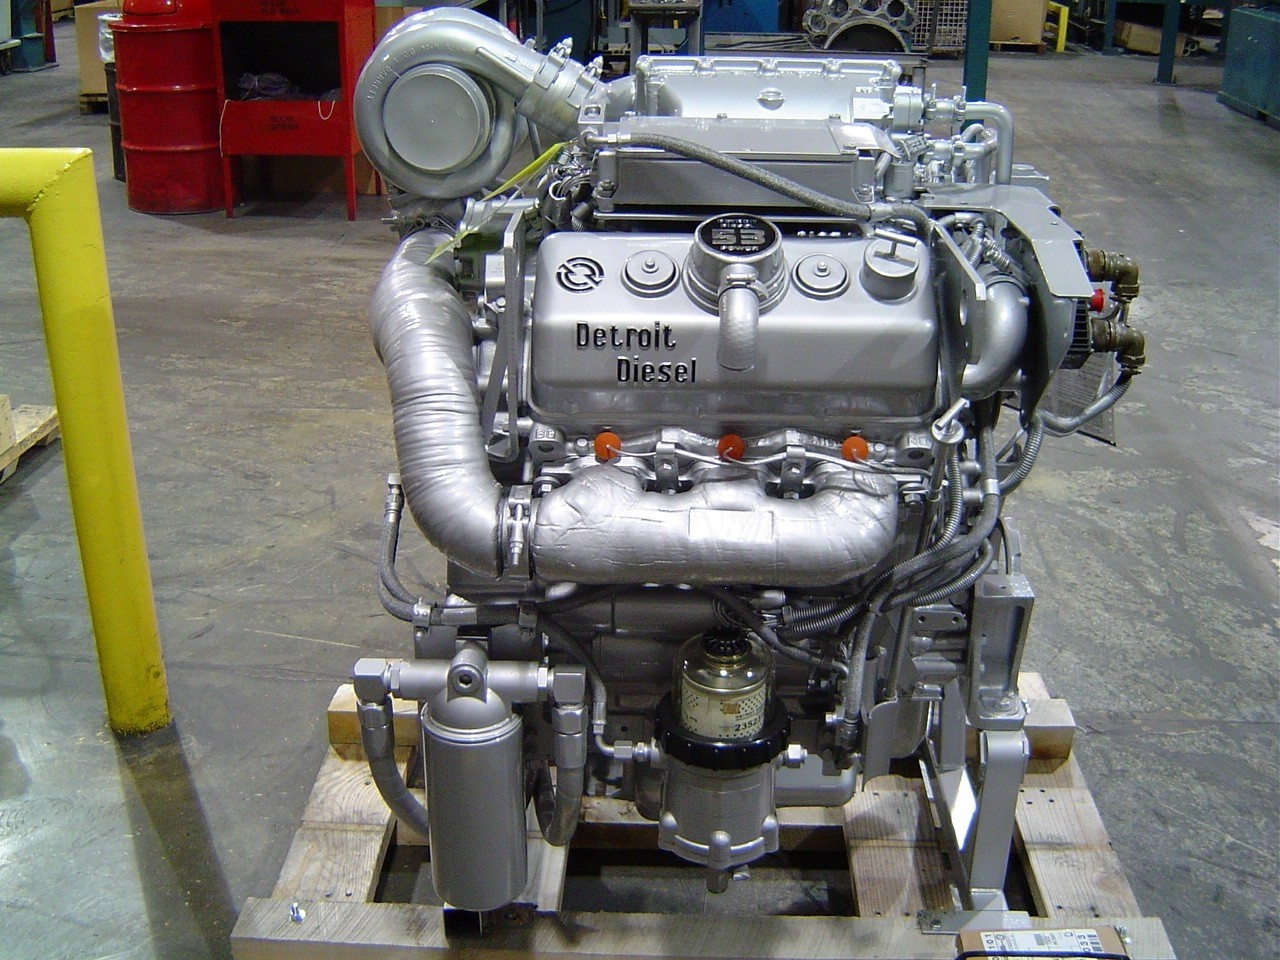 93 2 Cycle Engines Opti Engine Lubricant Carburetor Carb Diagram Mtu Detroit Diesel Is The Sole Manufacturer Of New Such As 6v 53